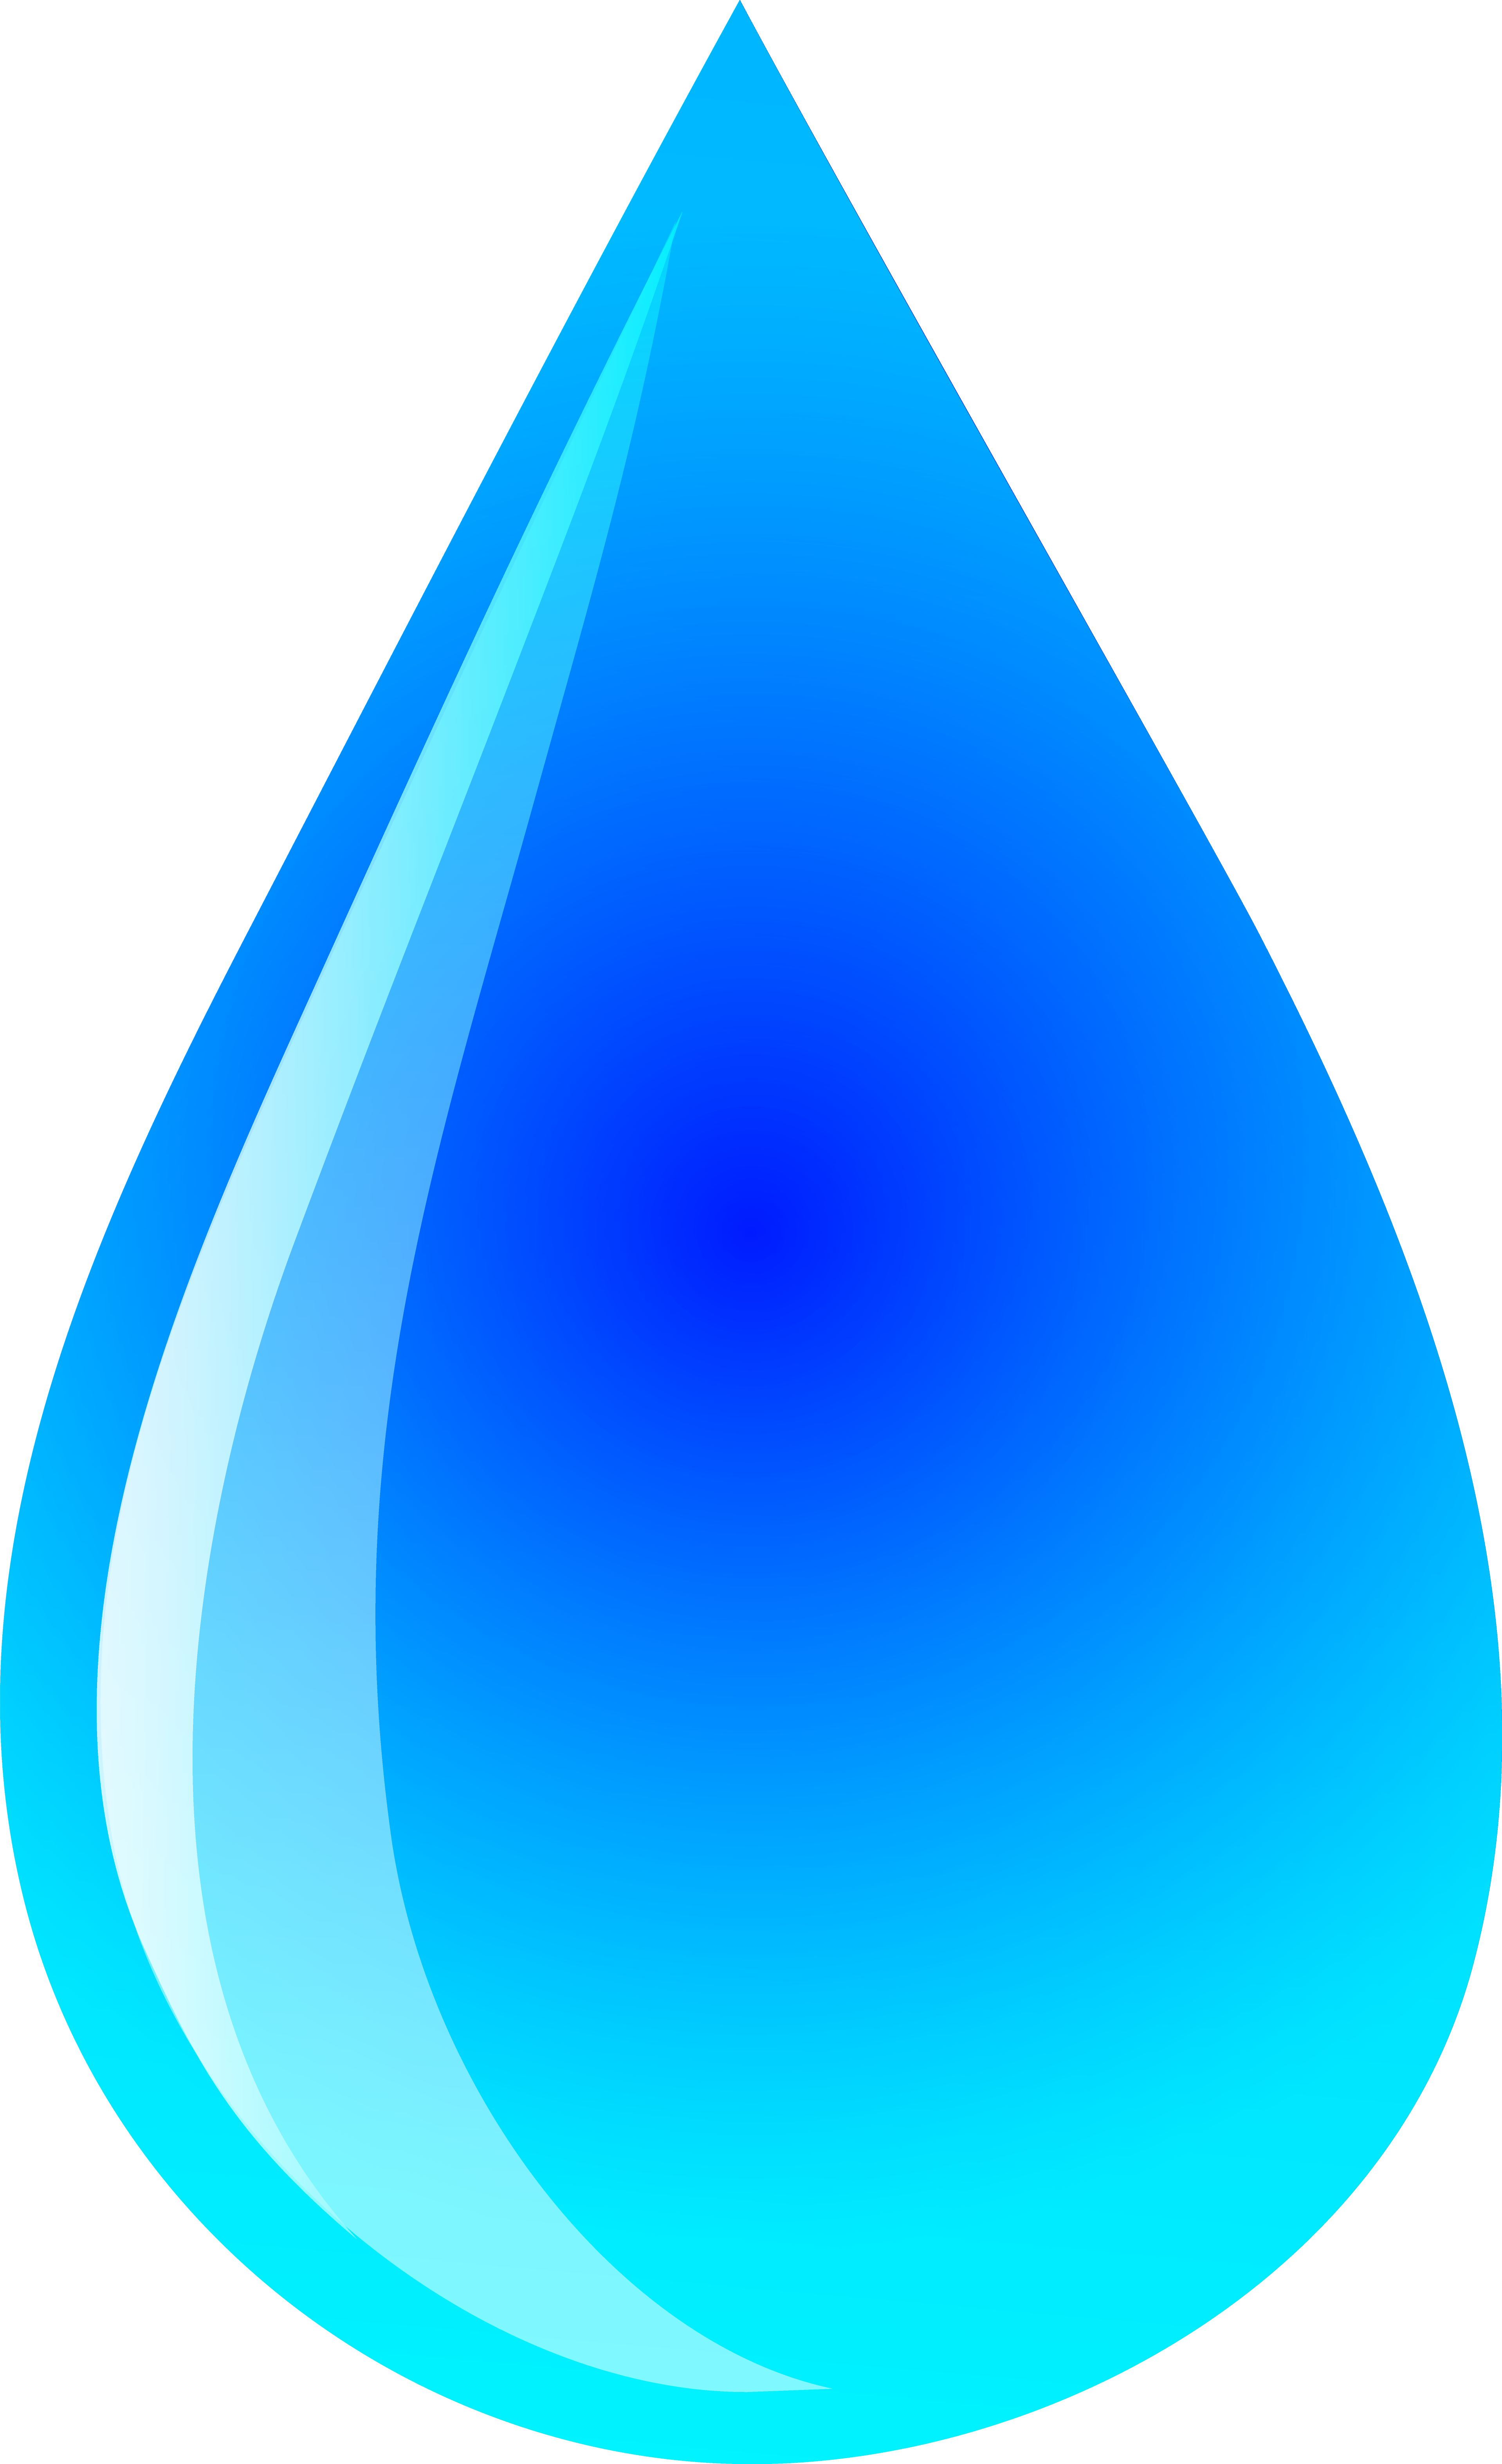 tear drop png